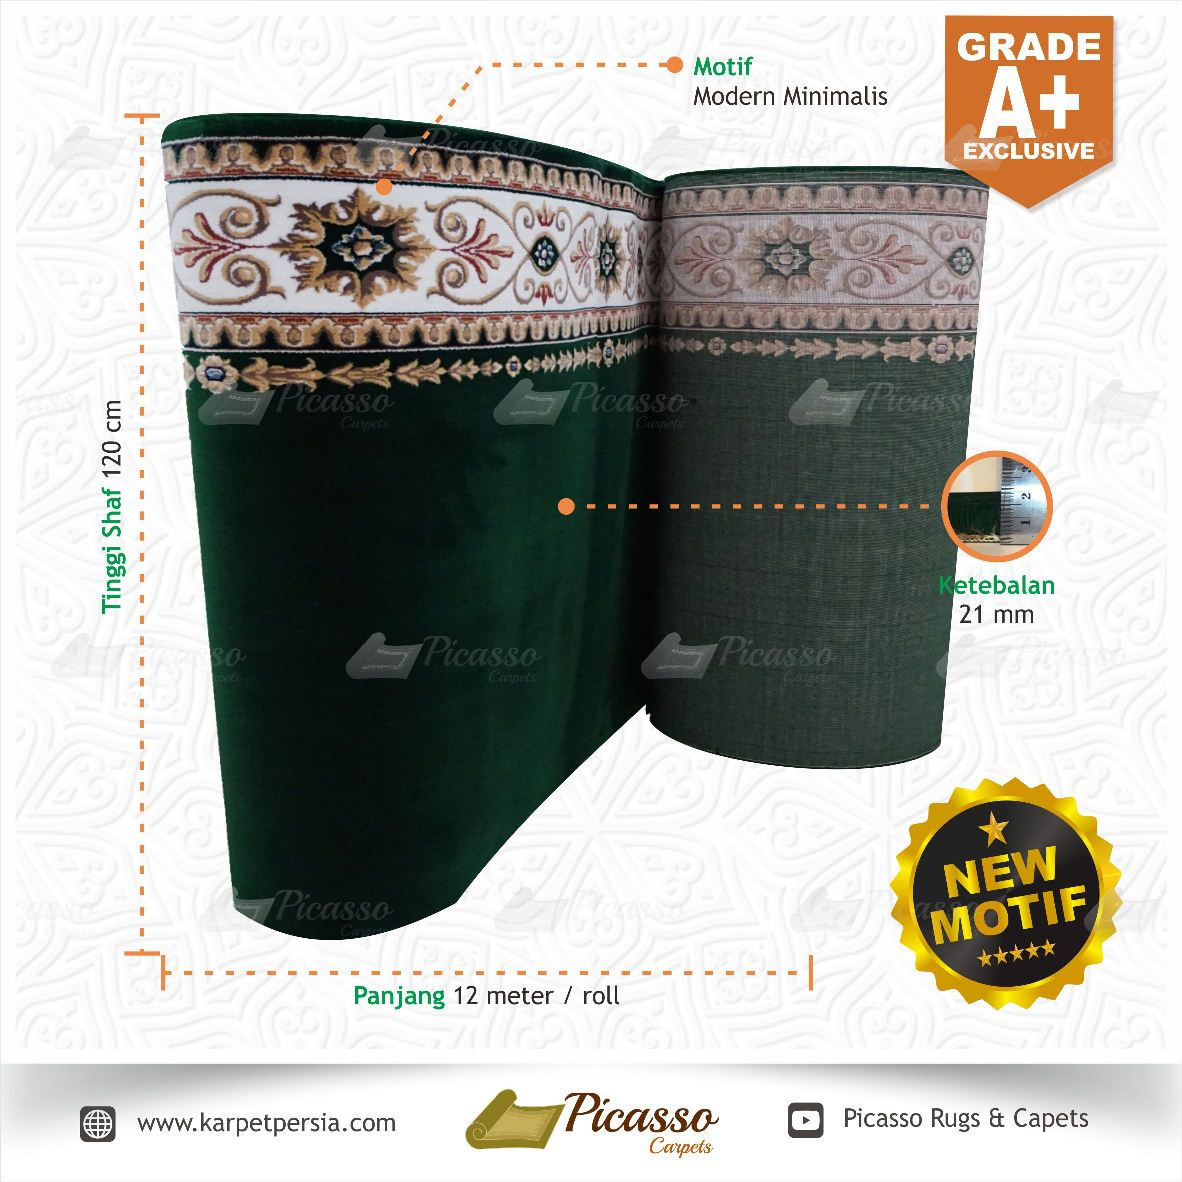 Karpet Masjid Grade A+ Exclusive